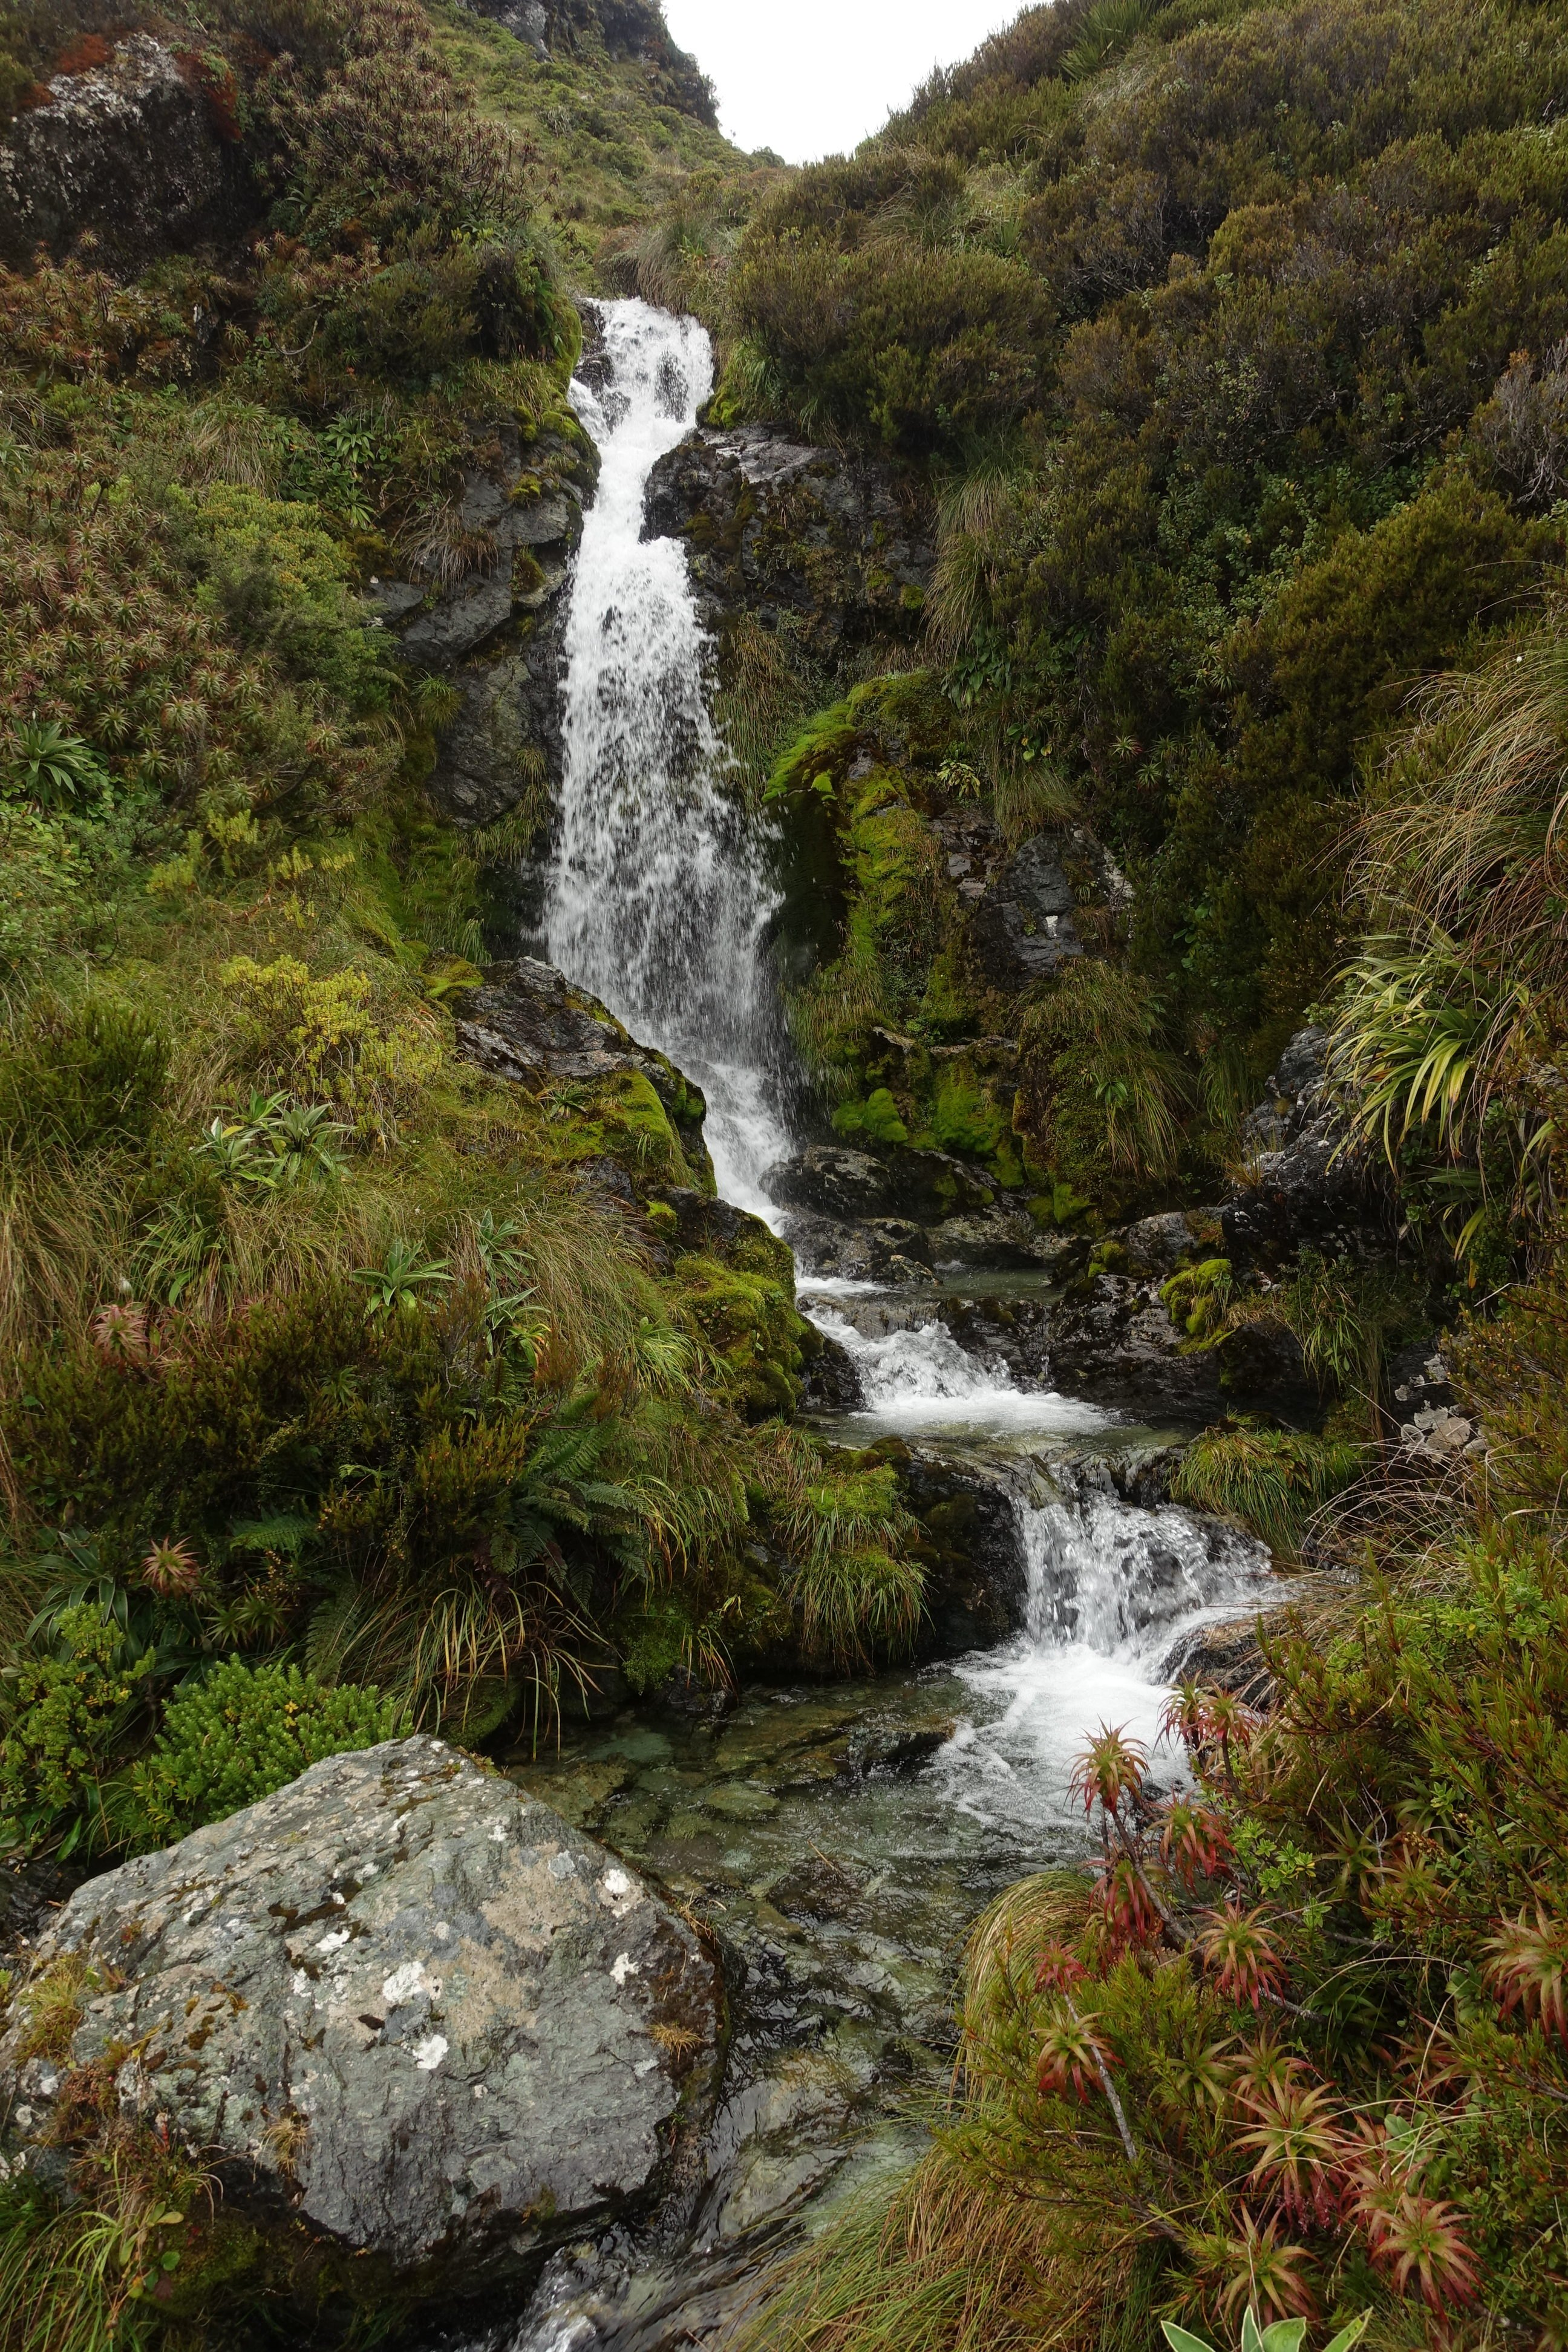 Another stream on the Routeburn